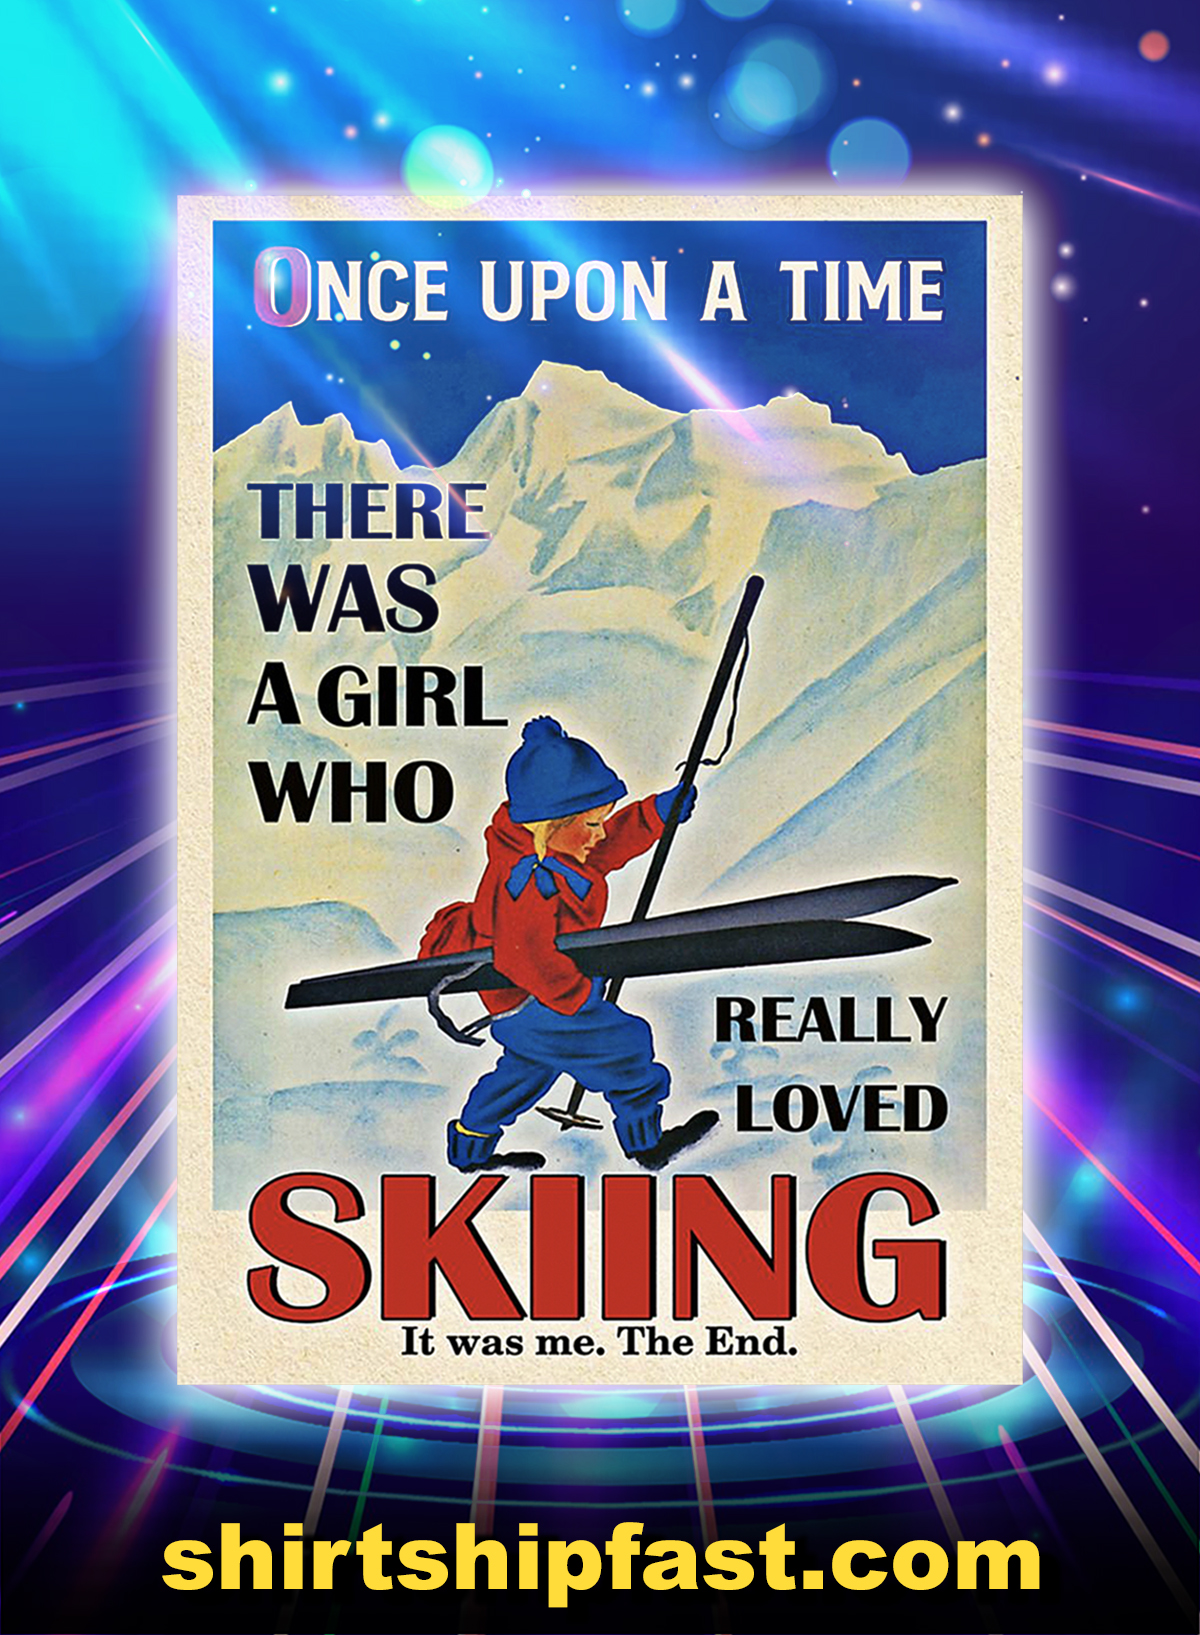 Once upon a time there was a girl who really loved SKIING poster - A1